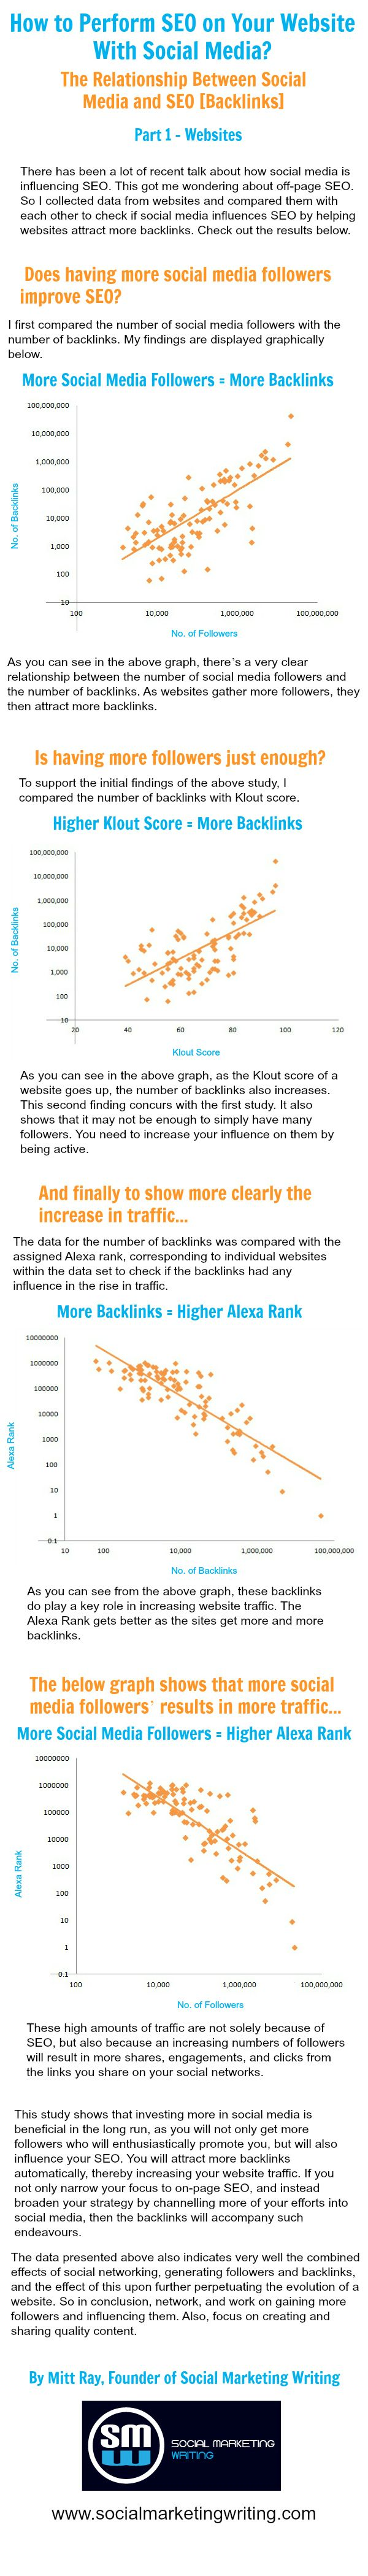 There has also been a lot of discussion lately about how social media affects SEO, especially because of the recent Google search engine updates where social shares play an important role. This got me wondering if social media plays a role in SEO by helping websites attract backlinks, as well. So I performed a study by collecting data from websites and analysed and compared them against each other to find out if there was a relation.